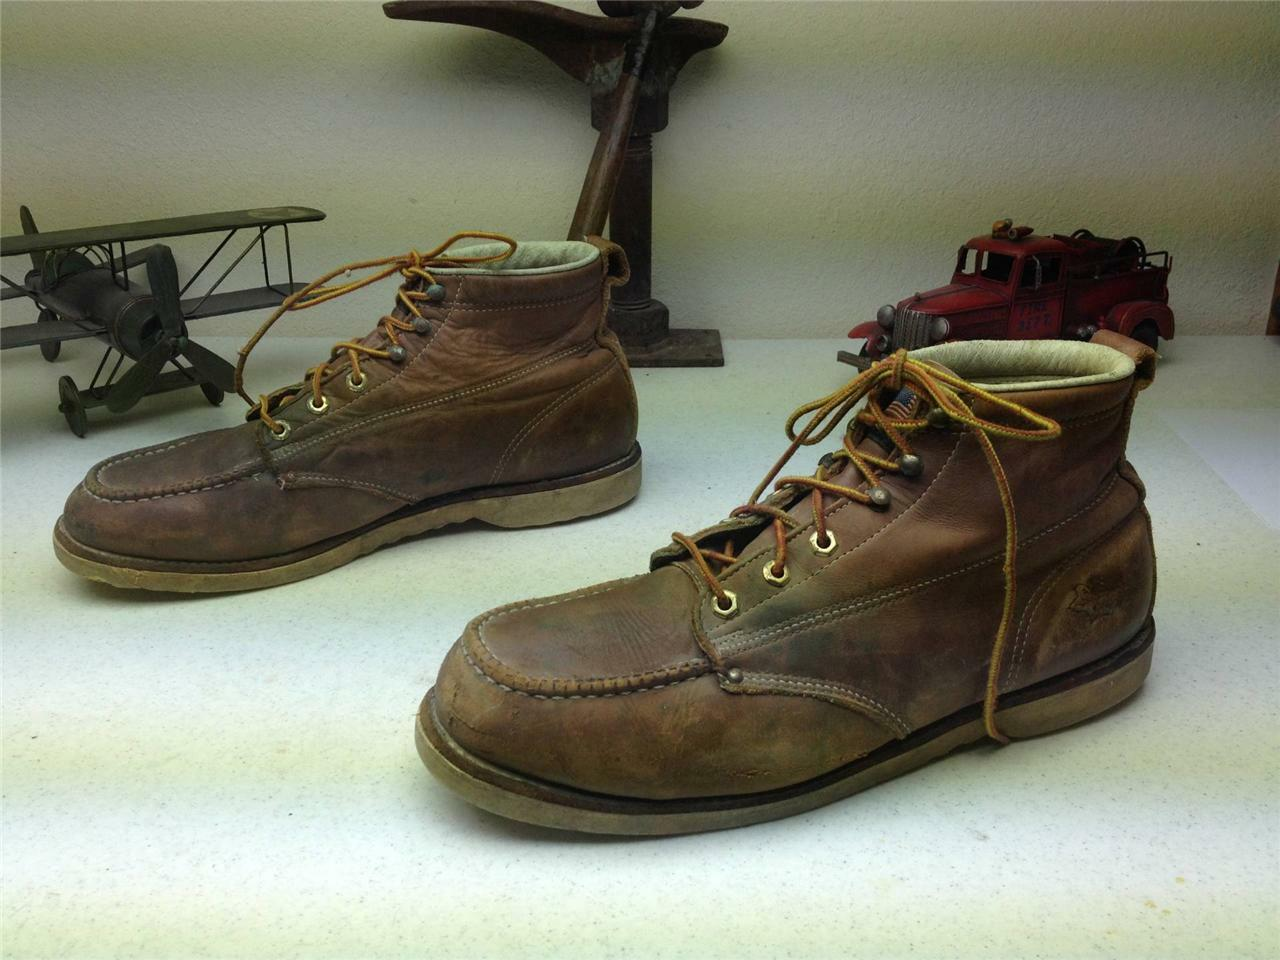 VINTAGE MADE IN USA FIELD N FOREST SPORT HUNTING BIRDING WORK CHORE BOOTS 13 EE